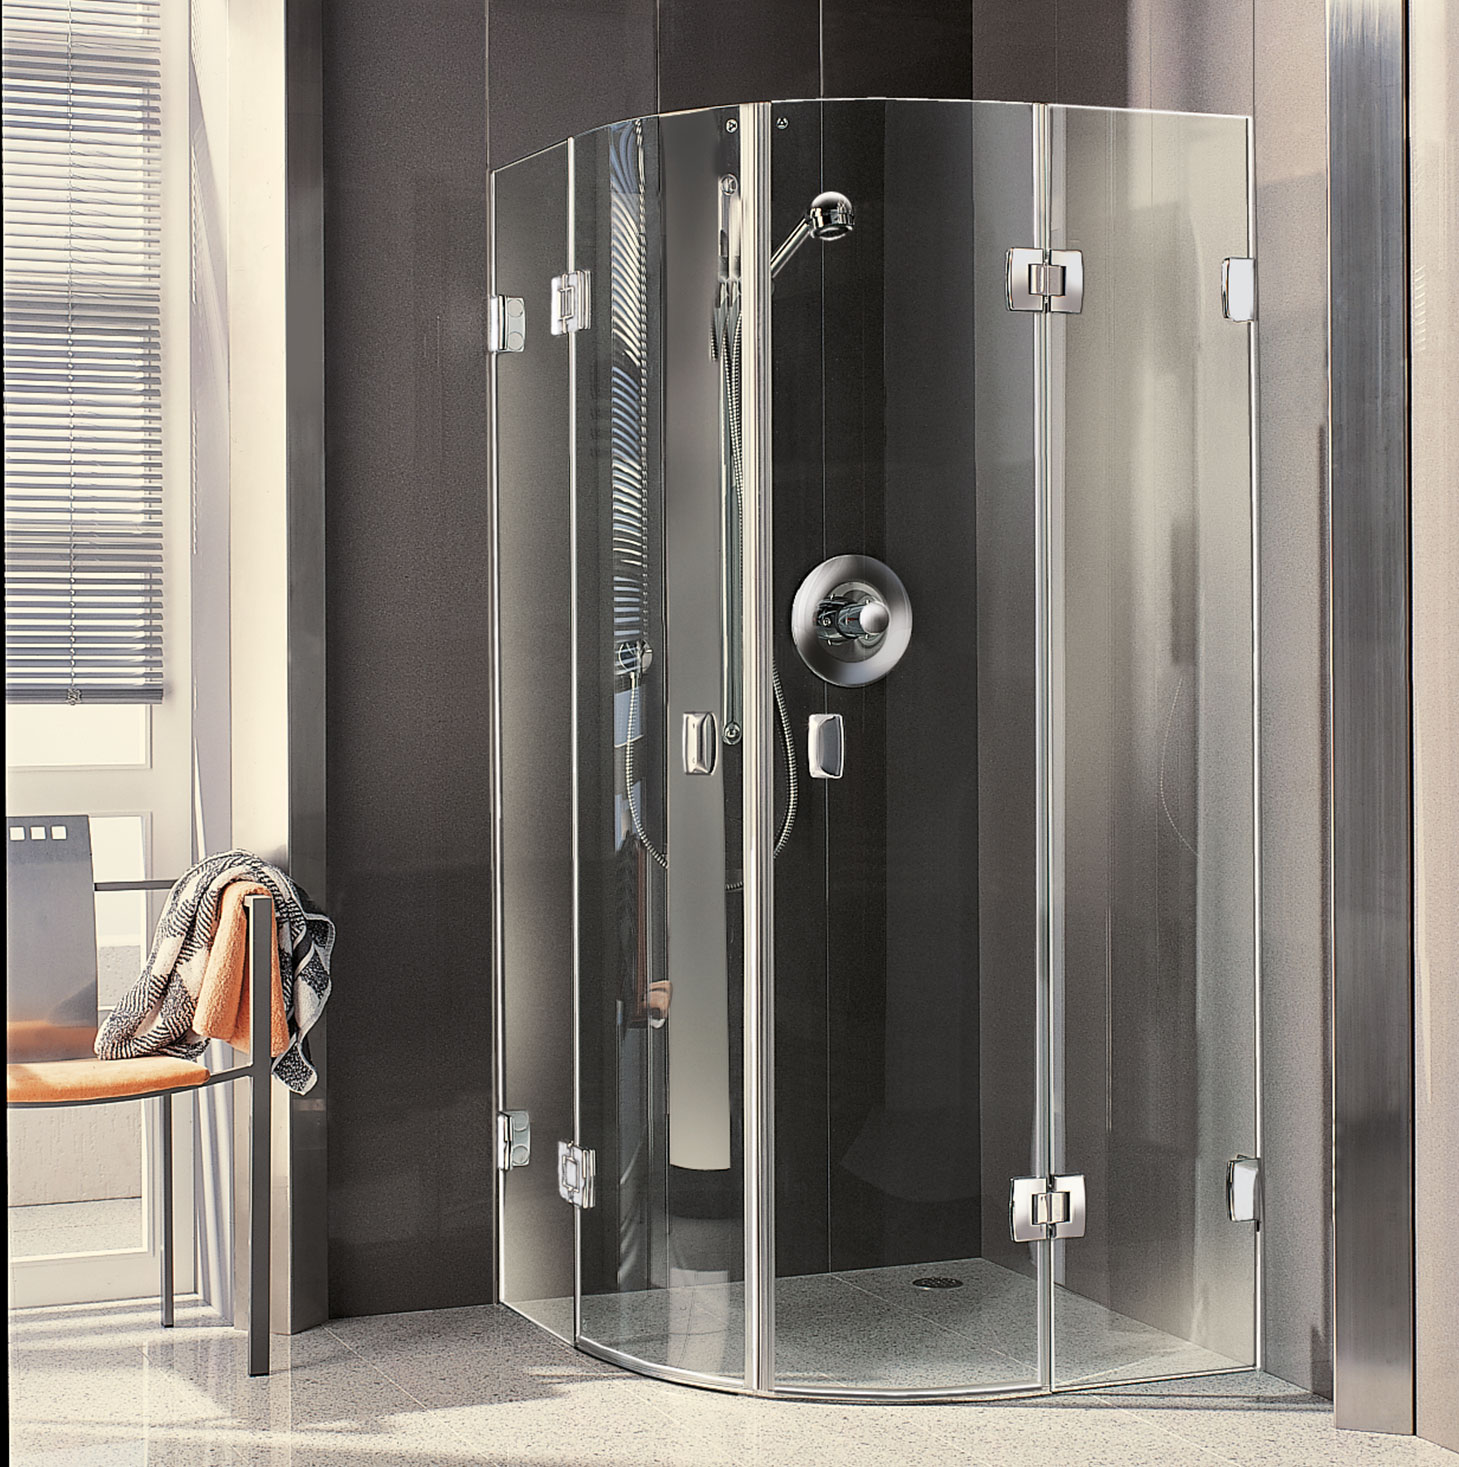 A modern Kermi shower enclosure from the all-glass range (2000)